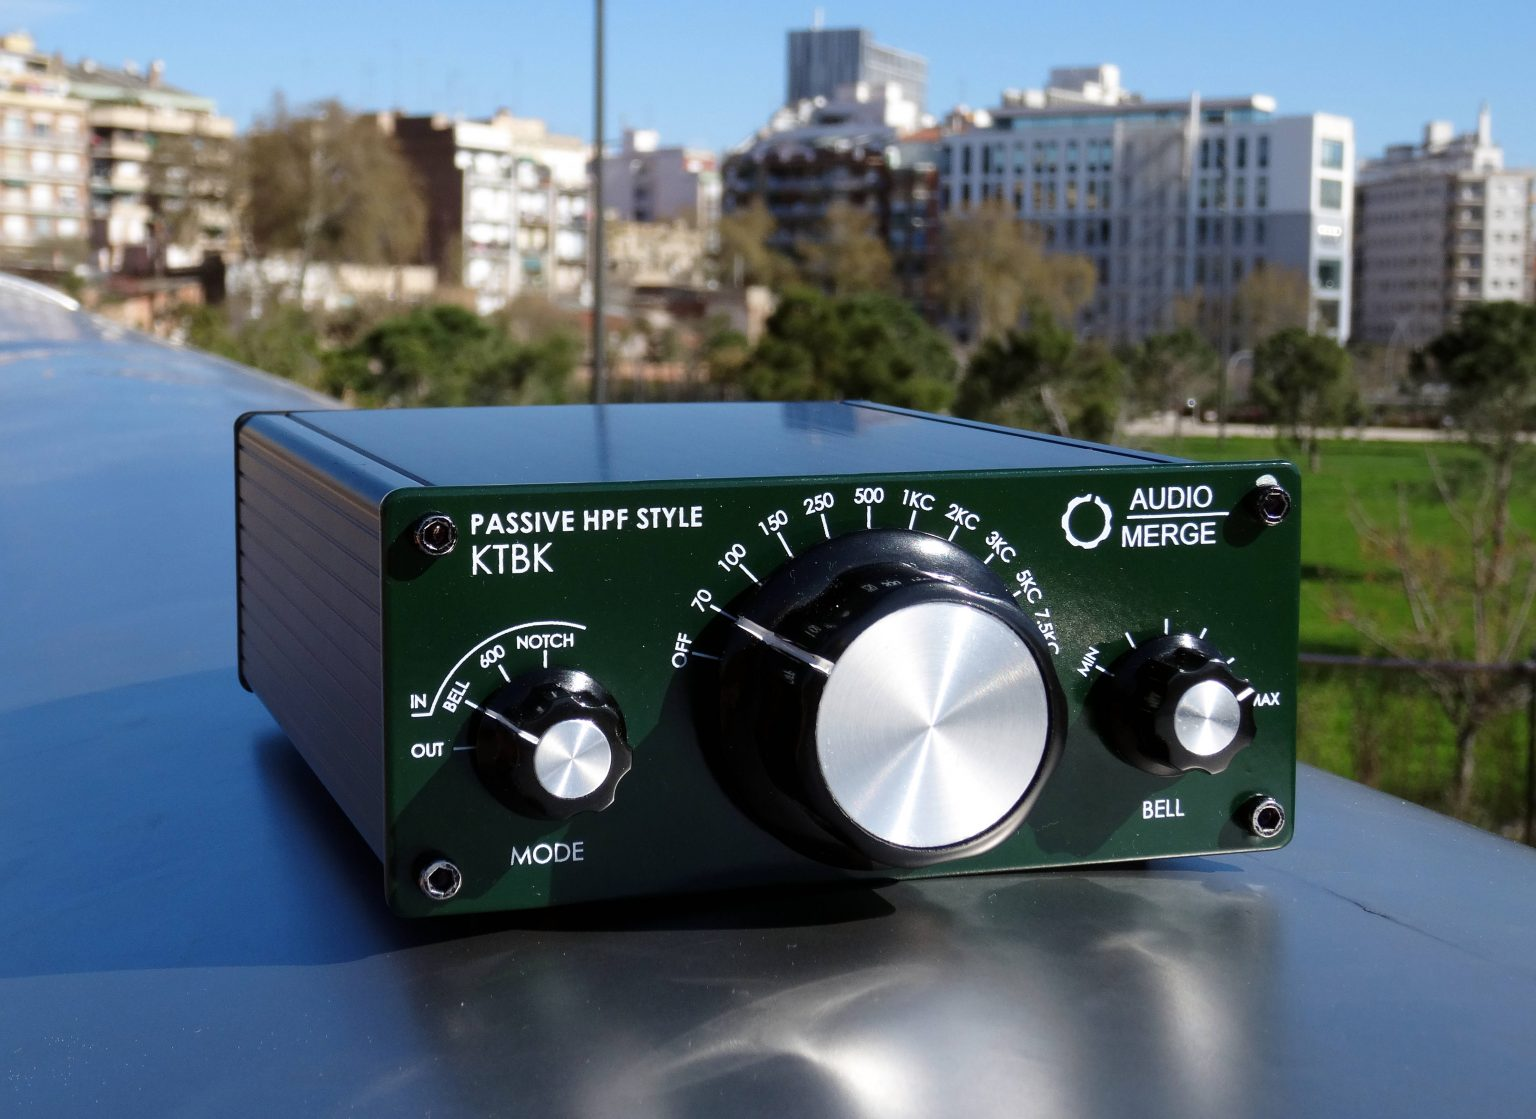 Th eKing TUbby Big Knob unit, a replica of Altec 9069B in the park. We launch a crowdfunding campaing soon. subscribe to our newletter to be the first to know.